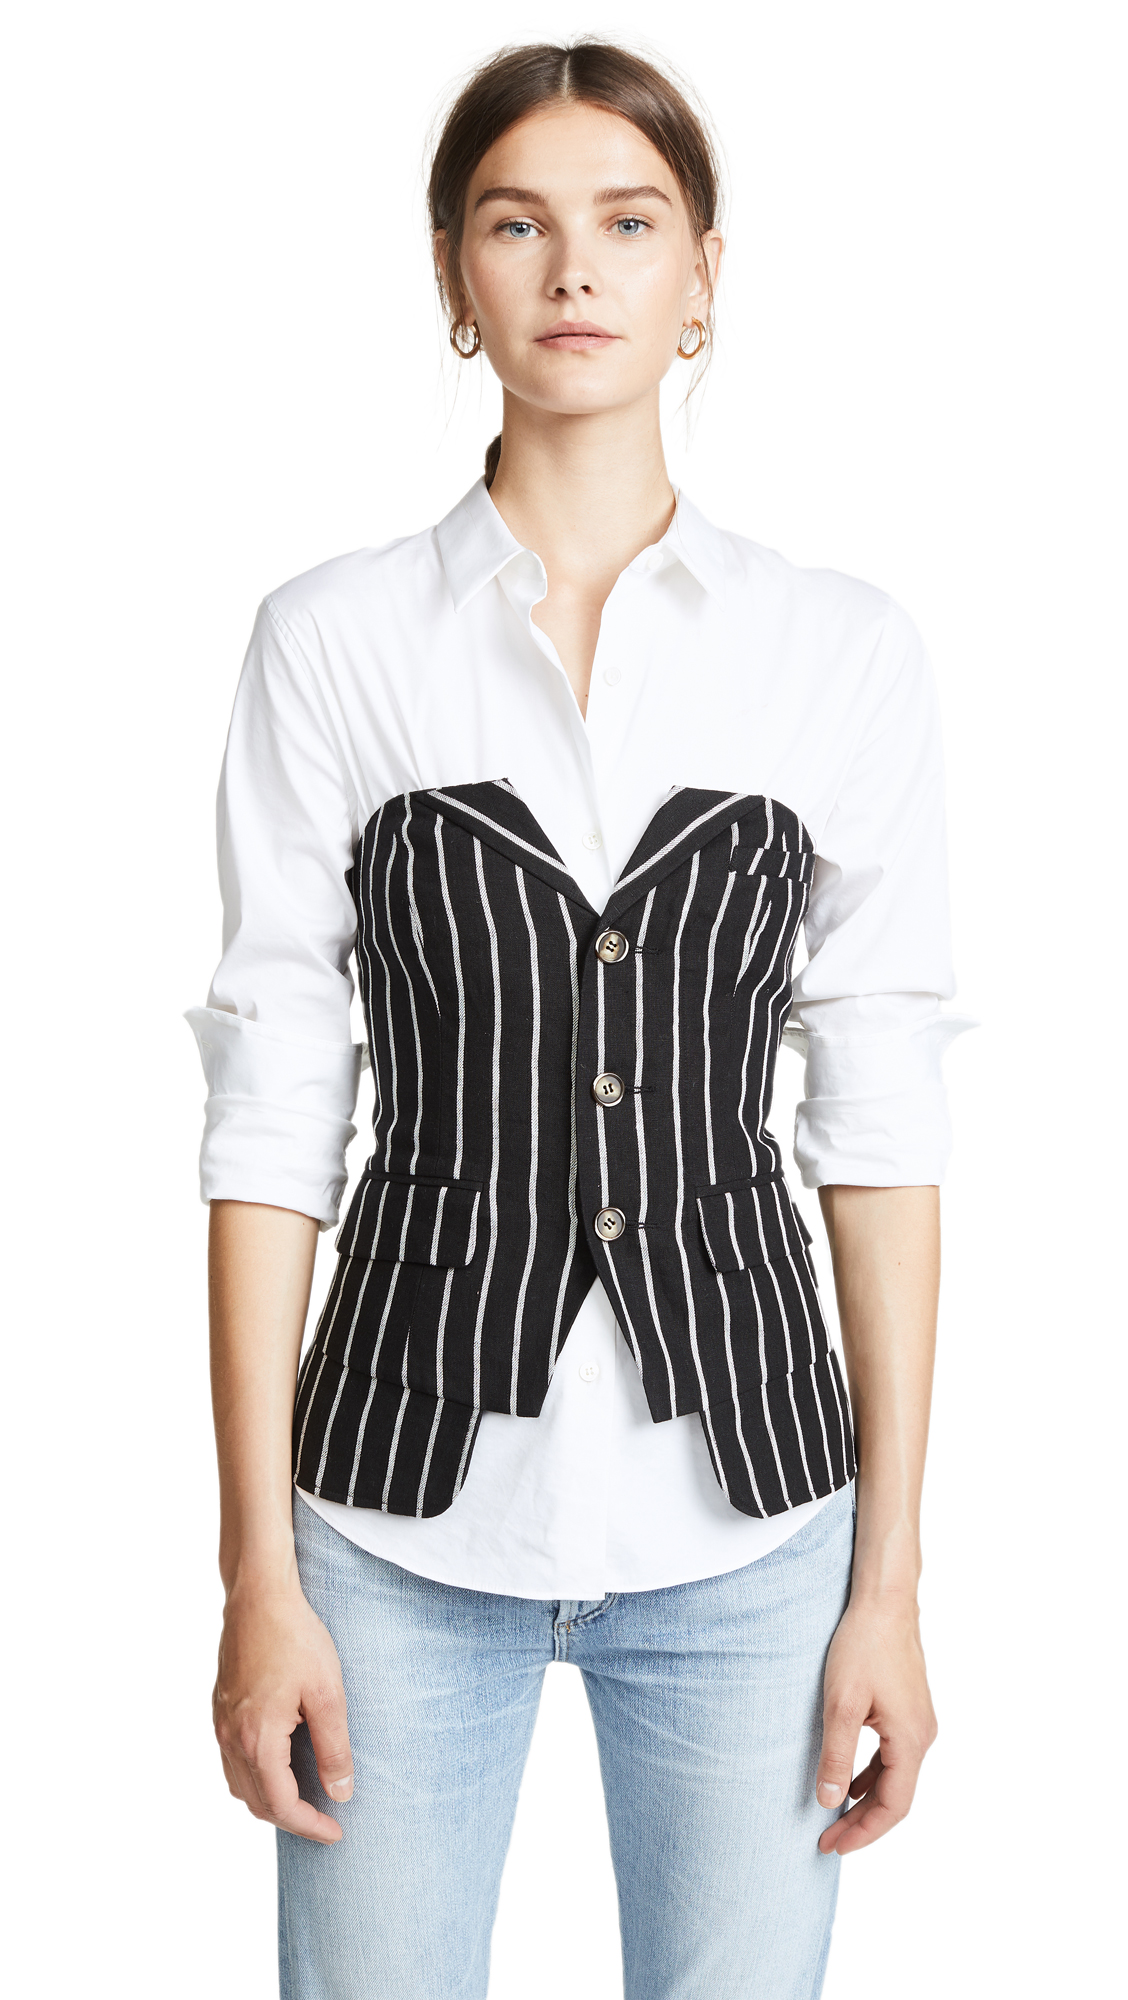 LAVEER BUTTON UP BUSTIER TOP